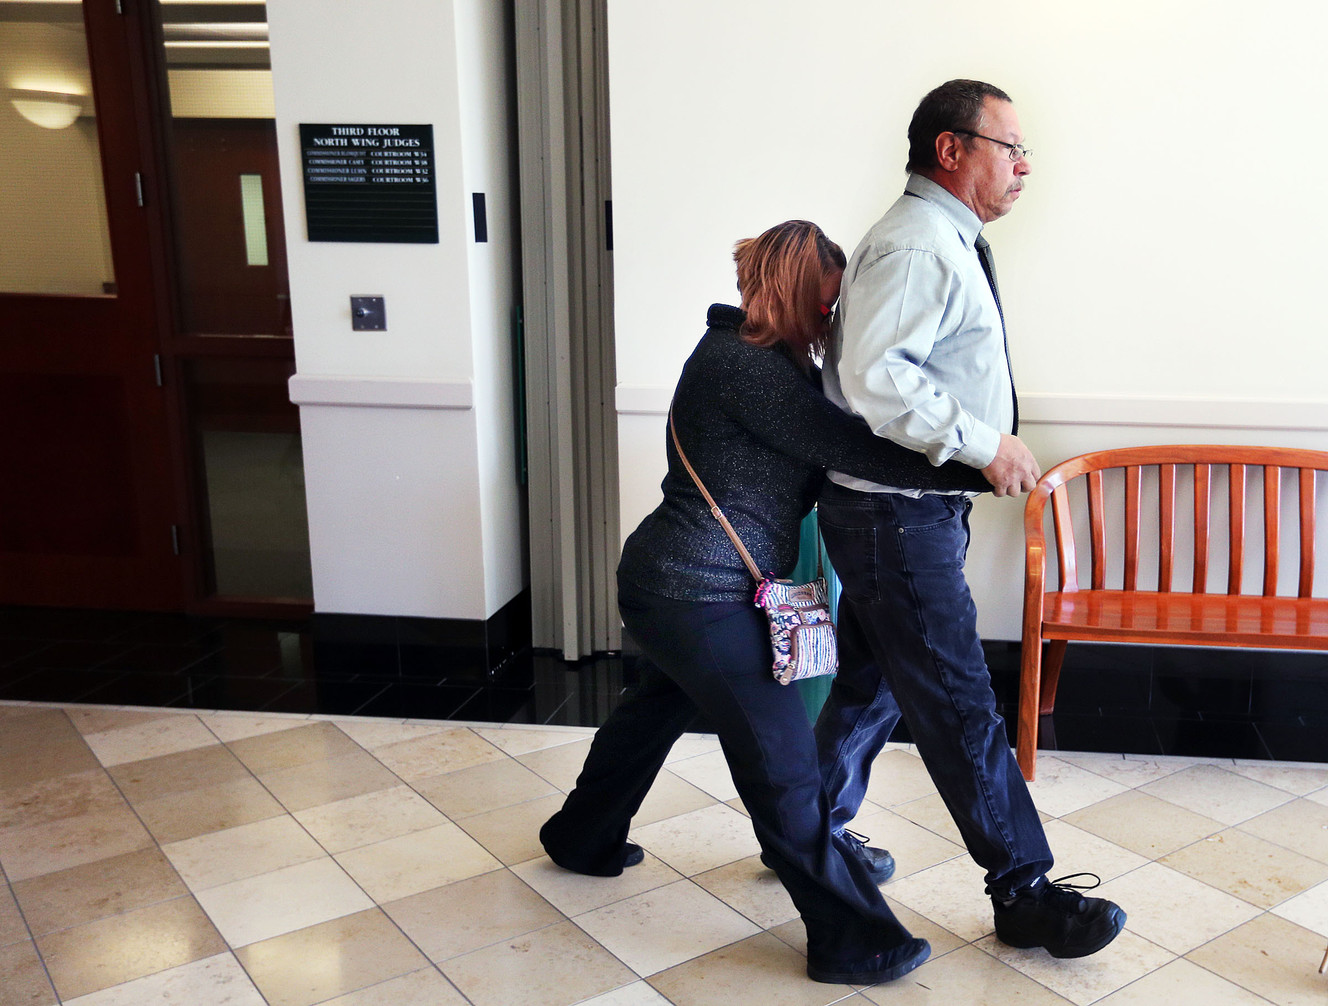 Another evaluation ordered for woman accused of leaving newborn in trash